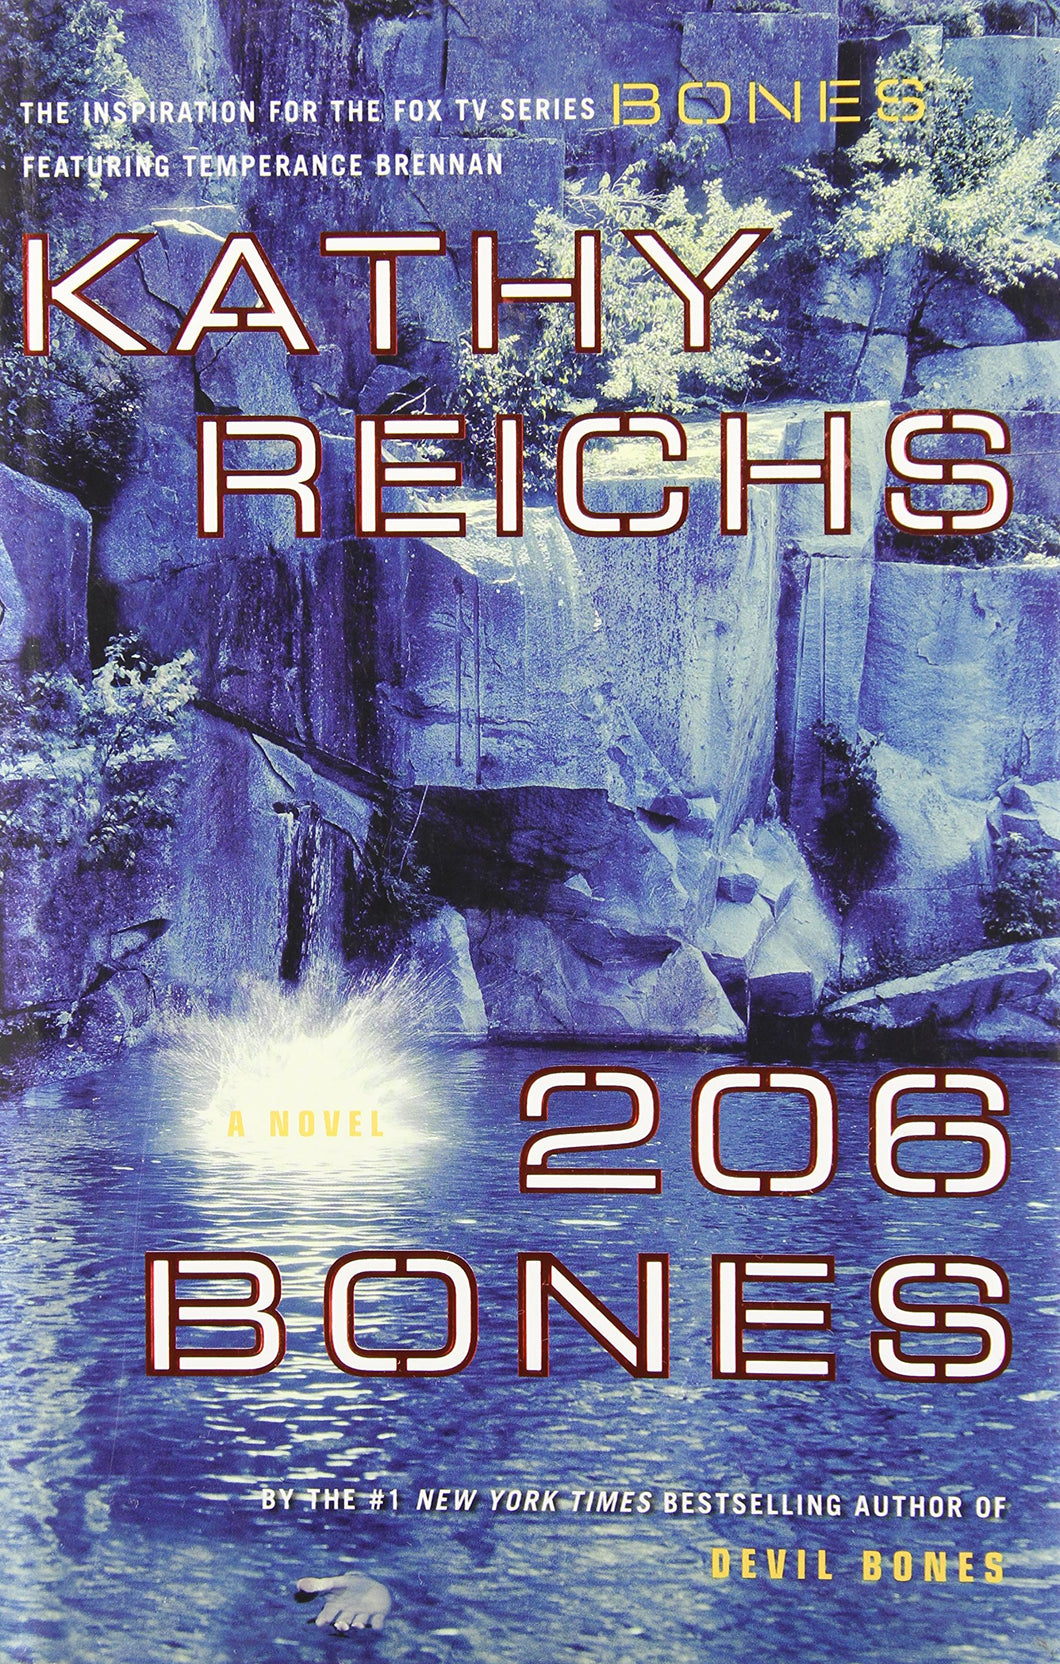 206 Bones (Temperance Brennan Series, Book 1)